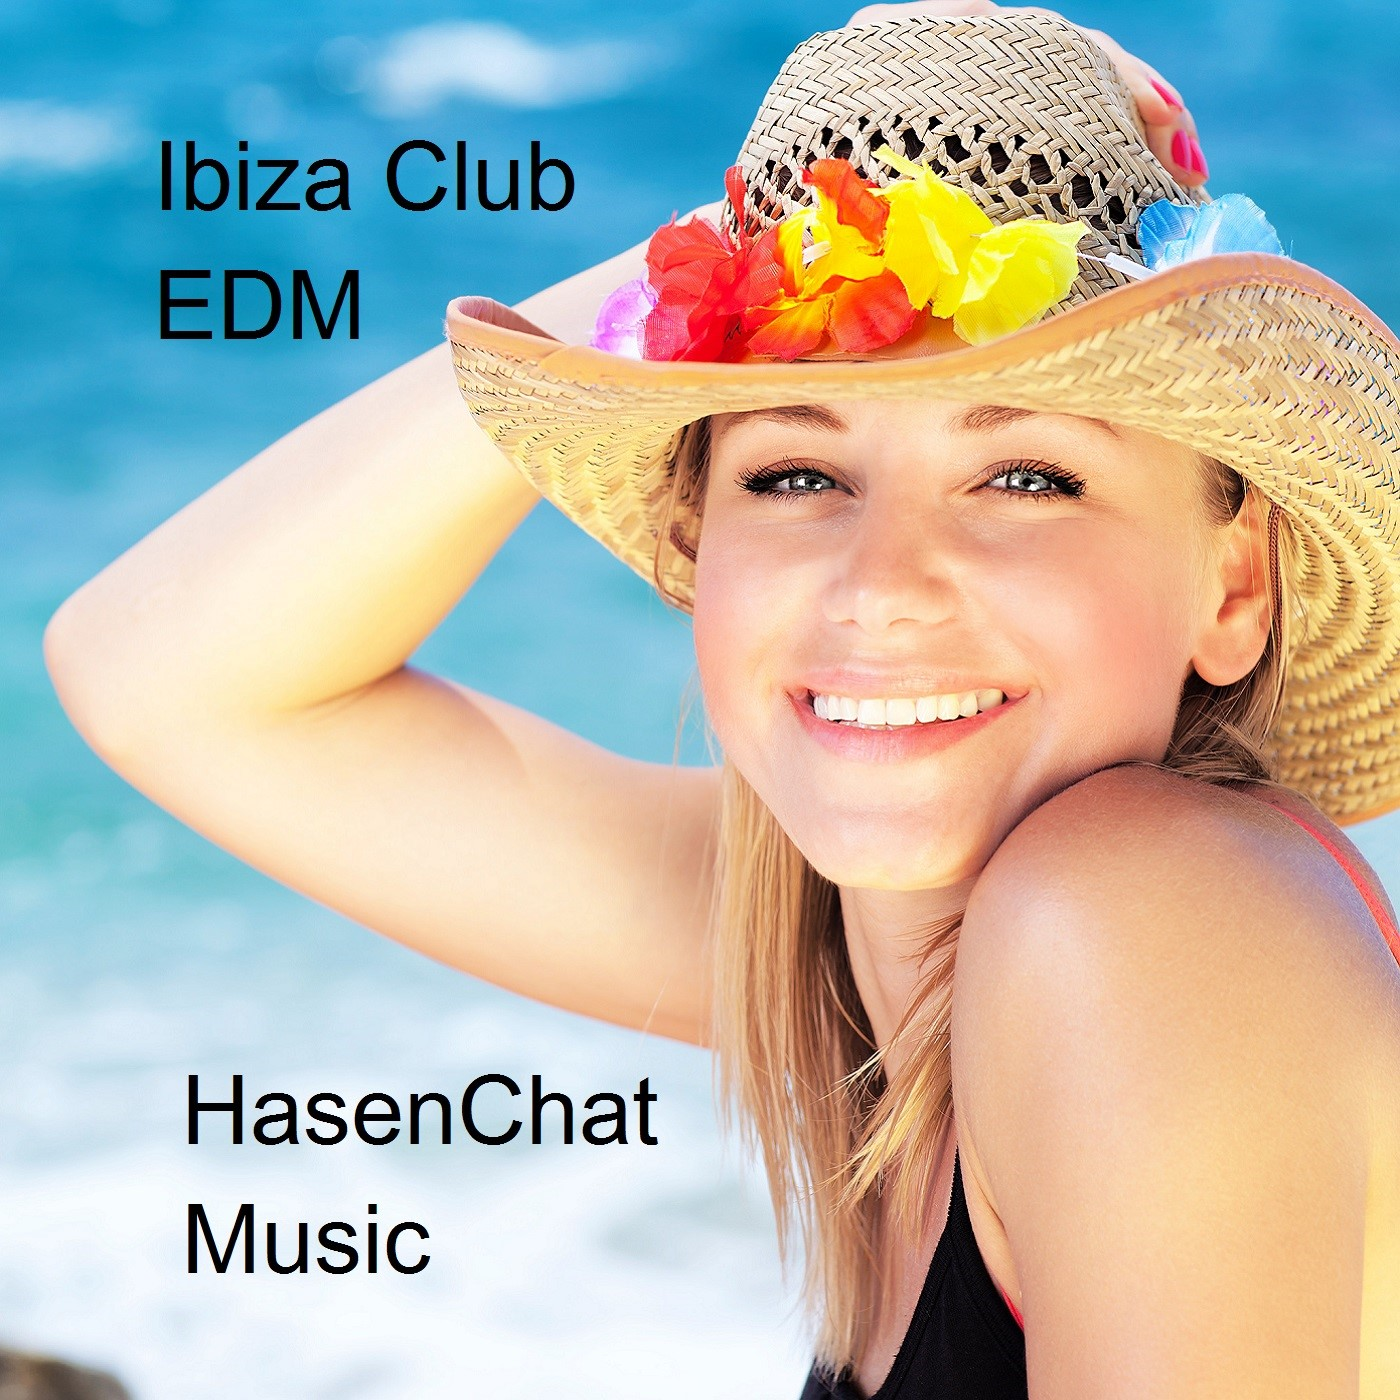 HasenChat Music - Ibiza Club EDM